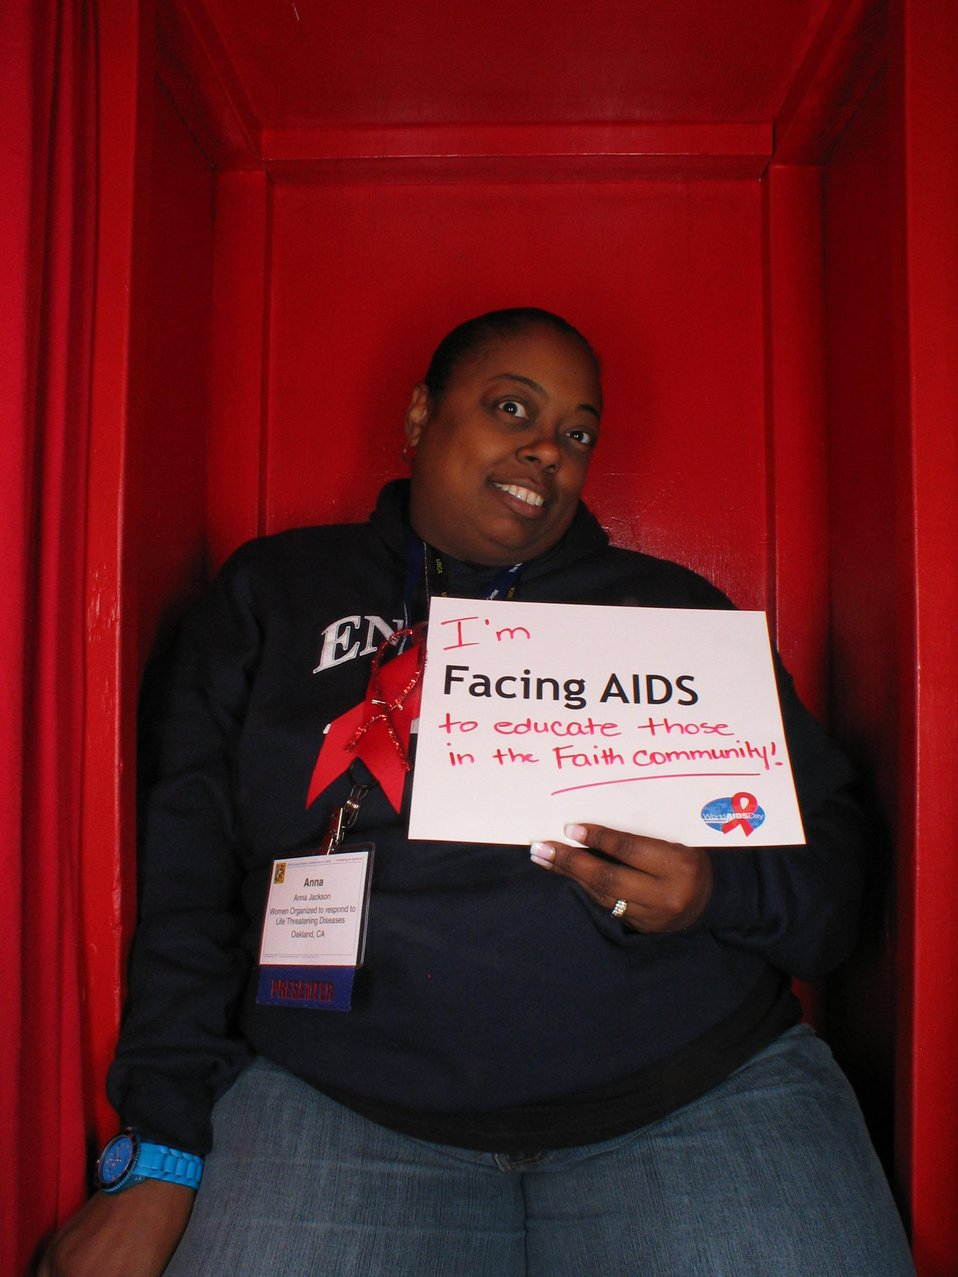 I'm Facing AIDS to educate those in the faith community.